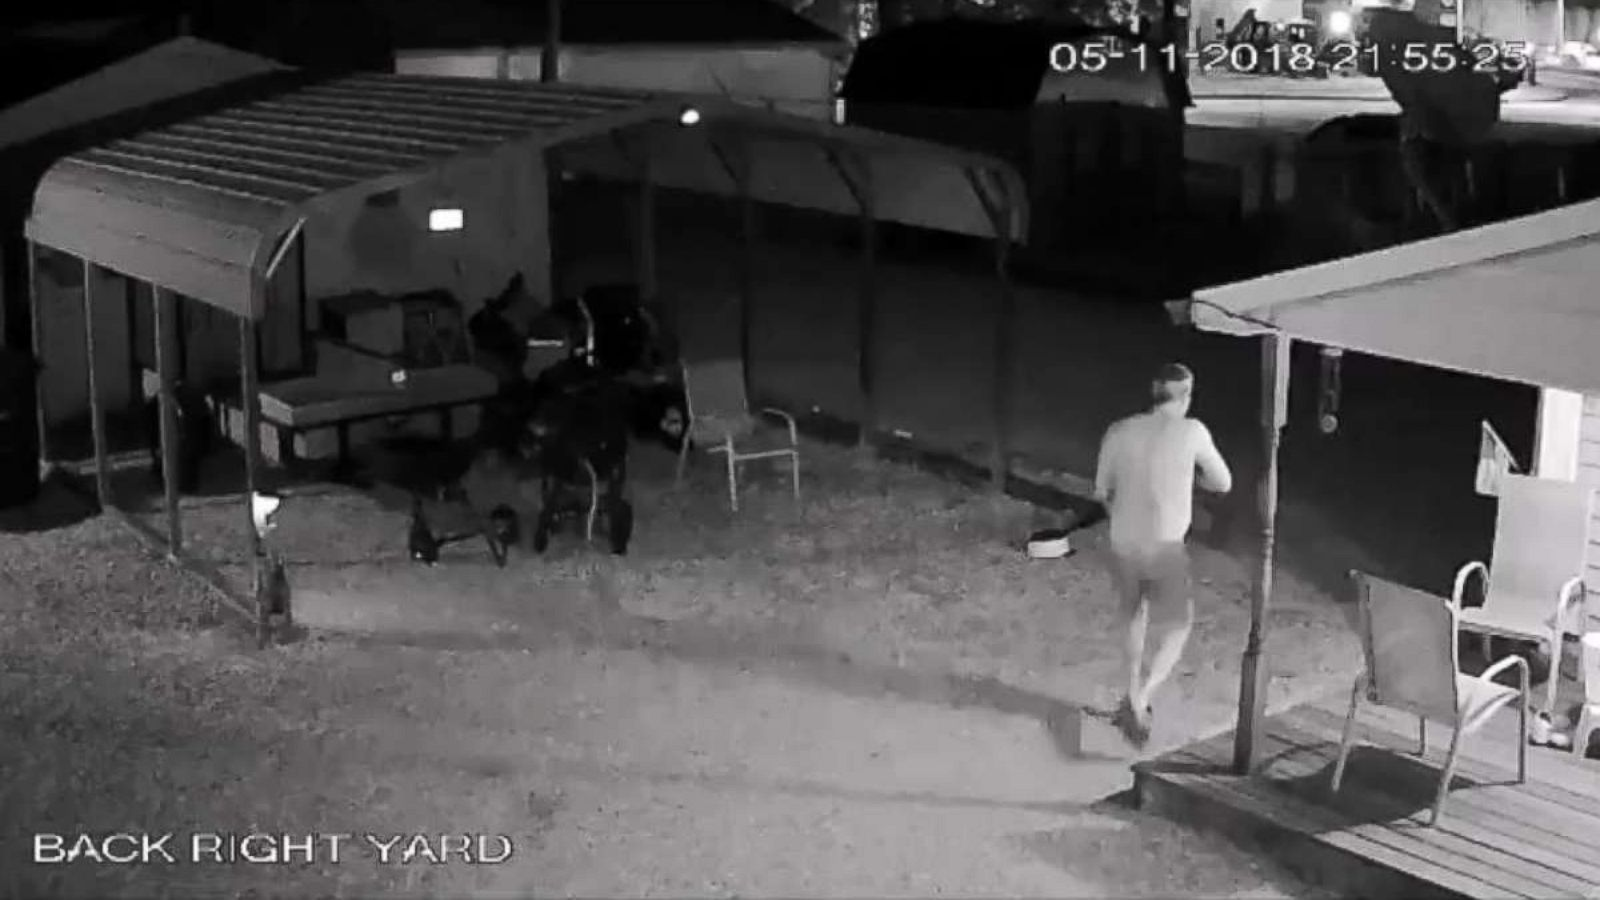 Indiana Police Release Surveillance Video From Deadly Ambush